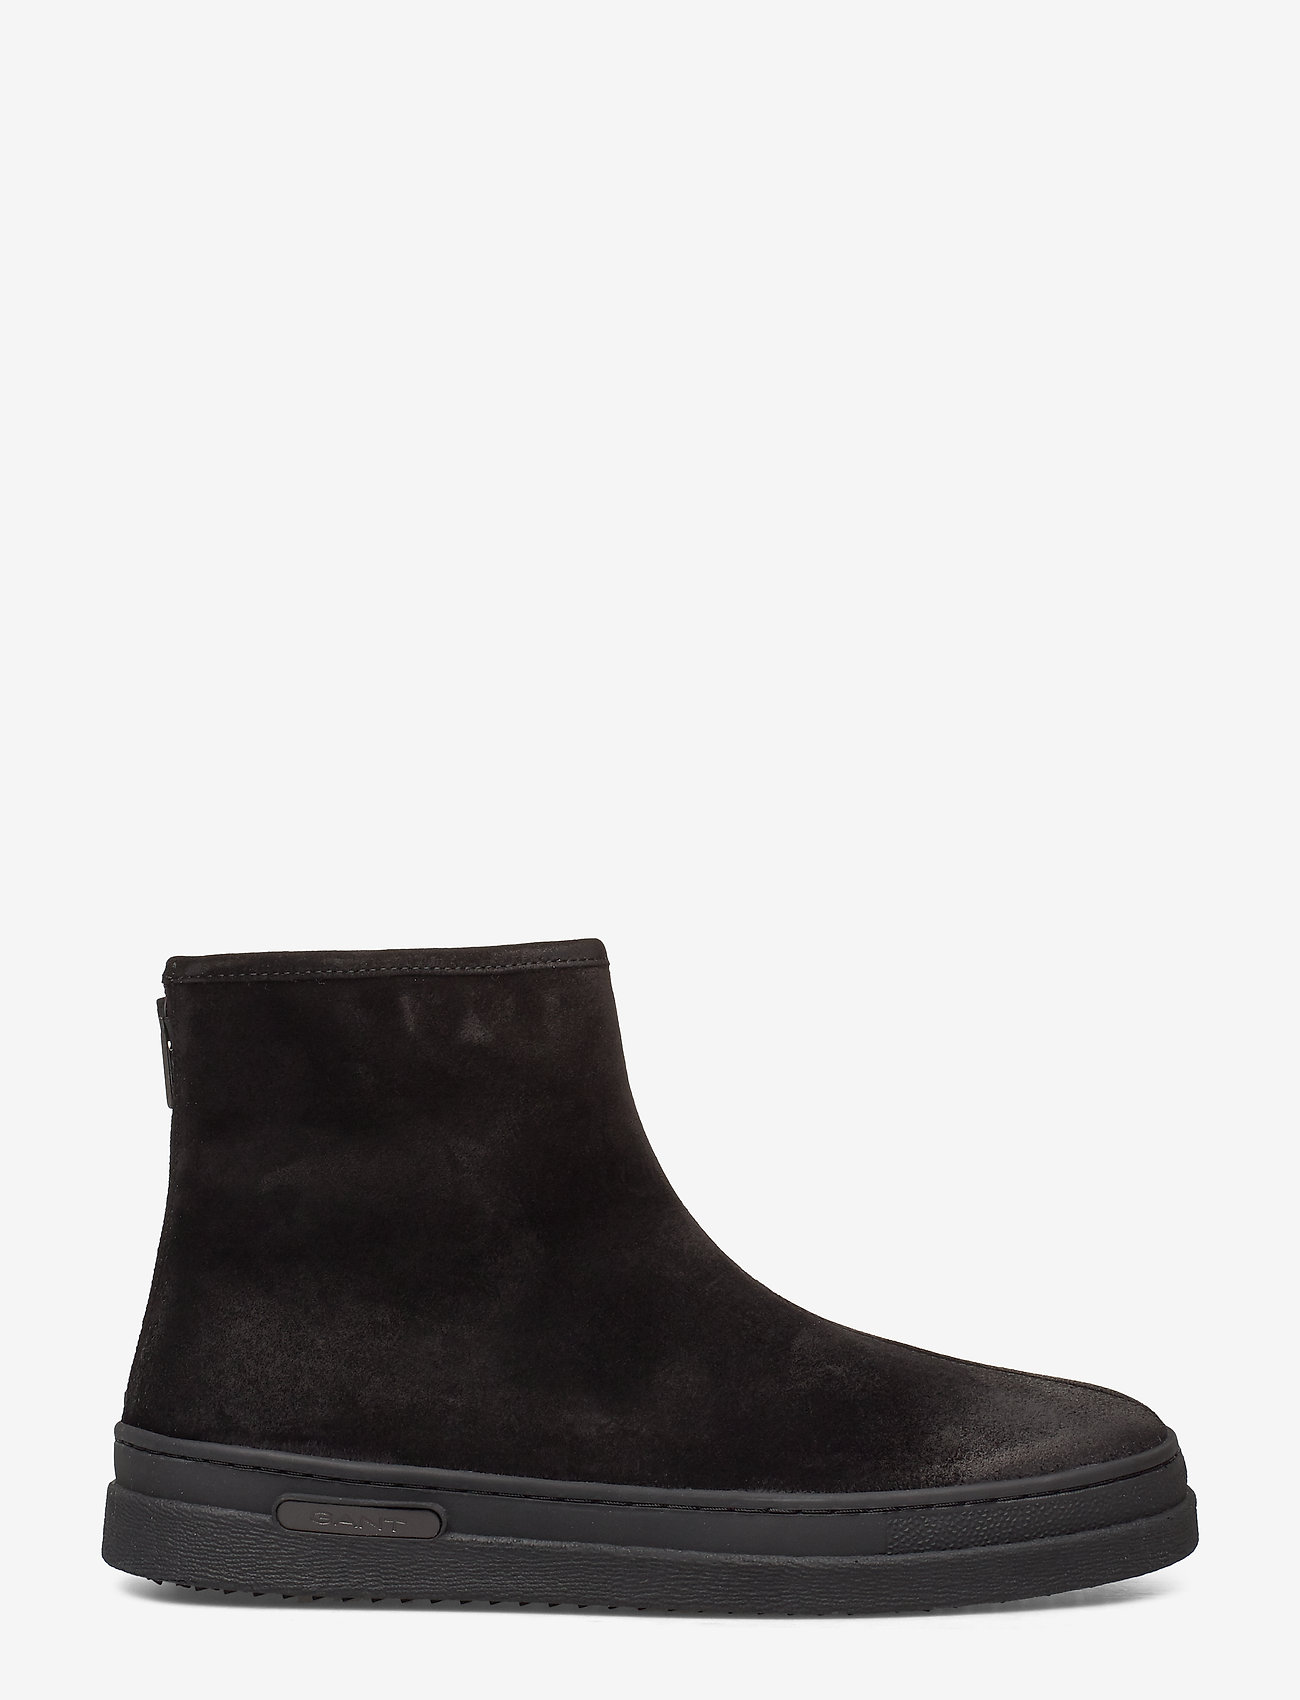 GANT - Creek Mid Zip boot - buty zimowe - black - 1